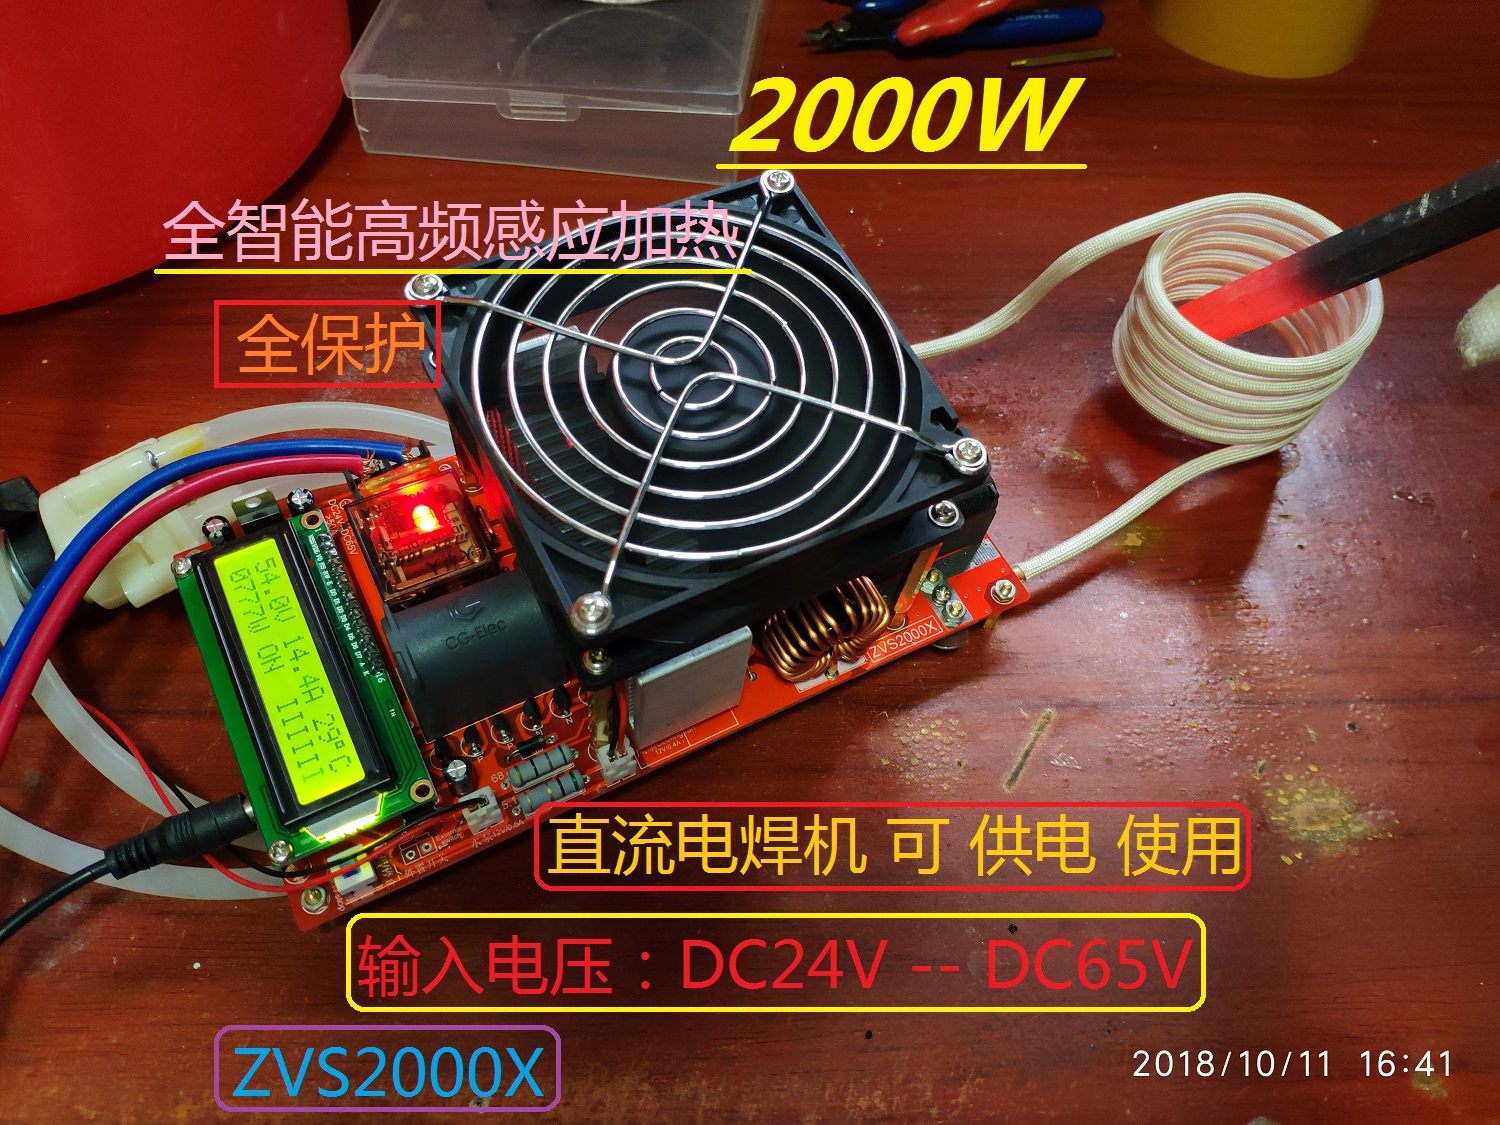 High-power ZVS High-frequency Induction Heating Machine Quenching Heating Smelting DC Welding Machine Power SupplyHigh-power ZVS High-frequency Induction Heating Machine Quenching Heating Smelting DC Welding Machine Power Supply